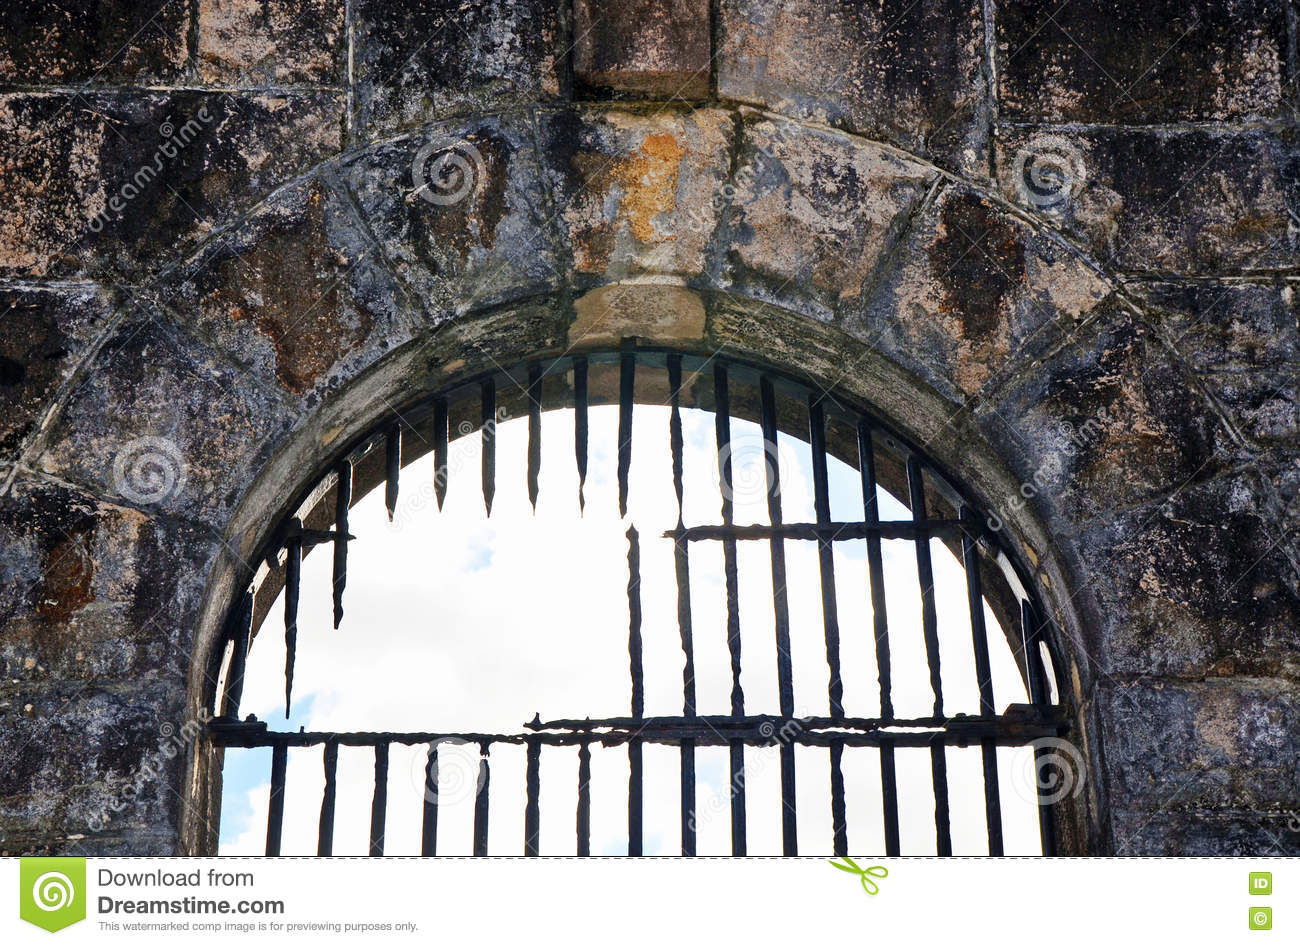 Broken rusty iron bars on old jail (gaol) arched window